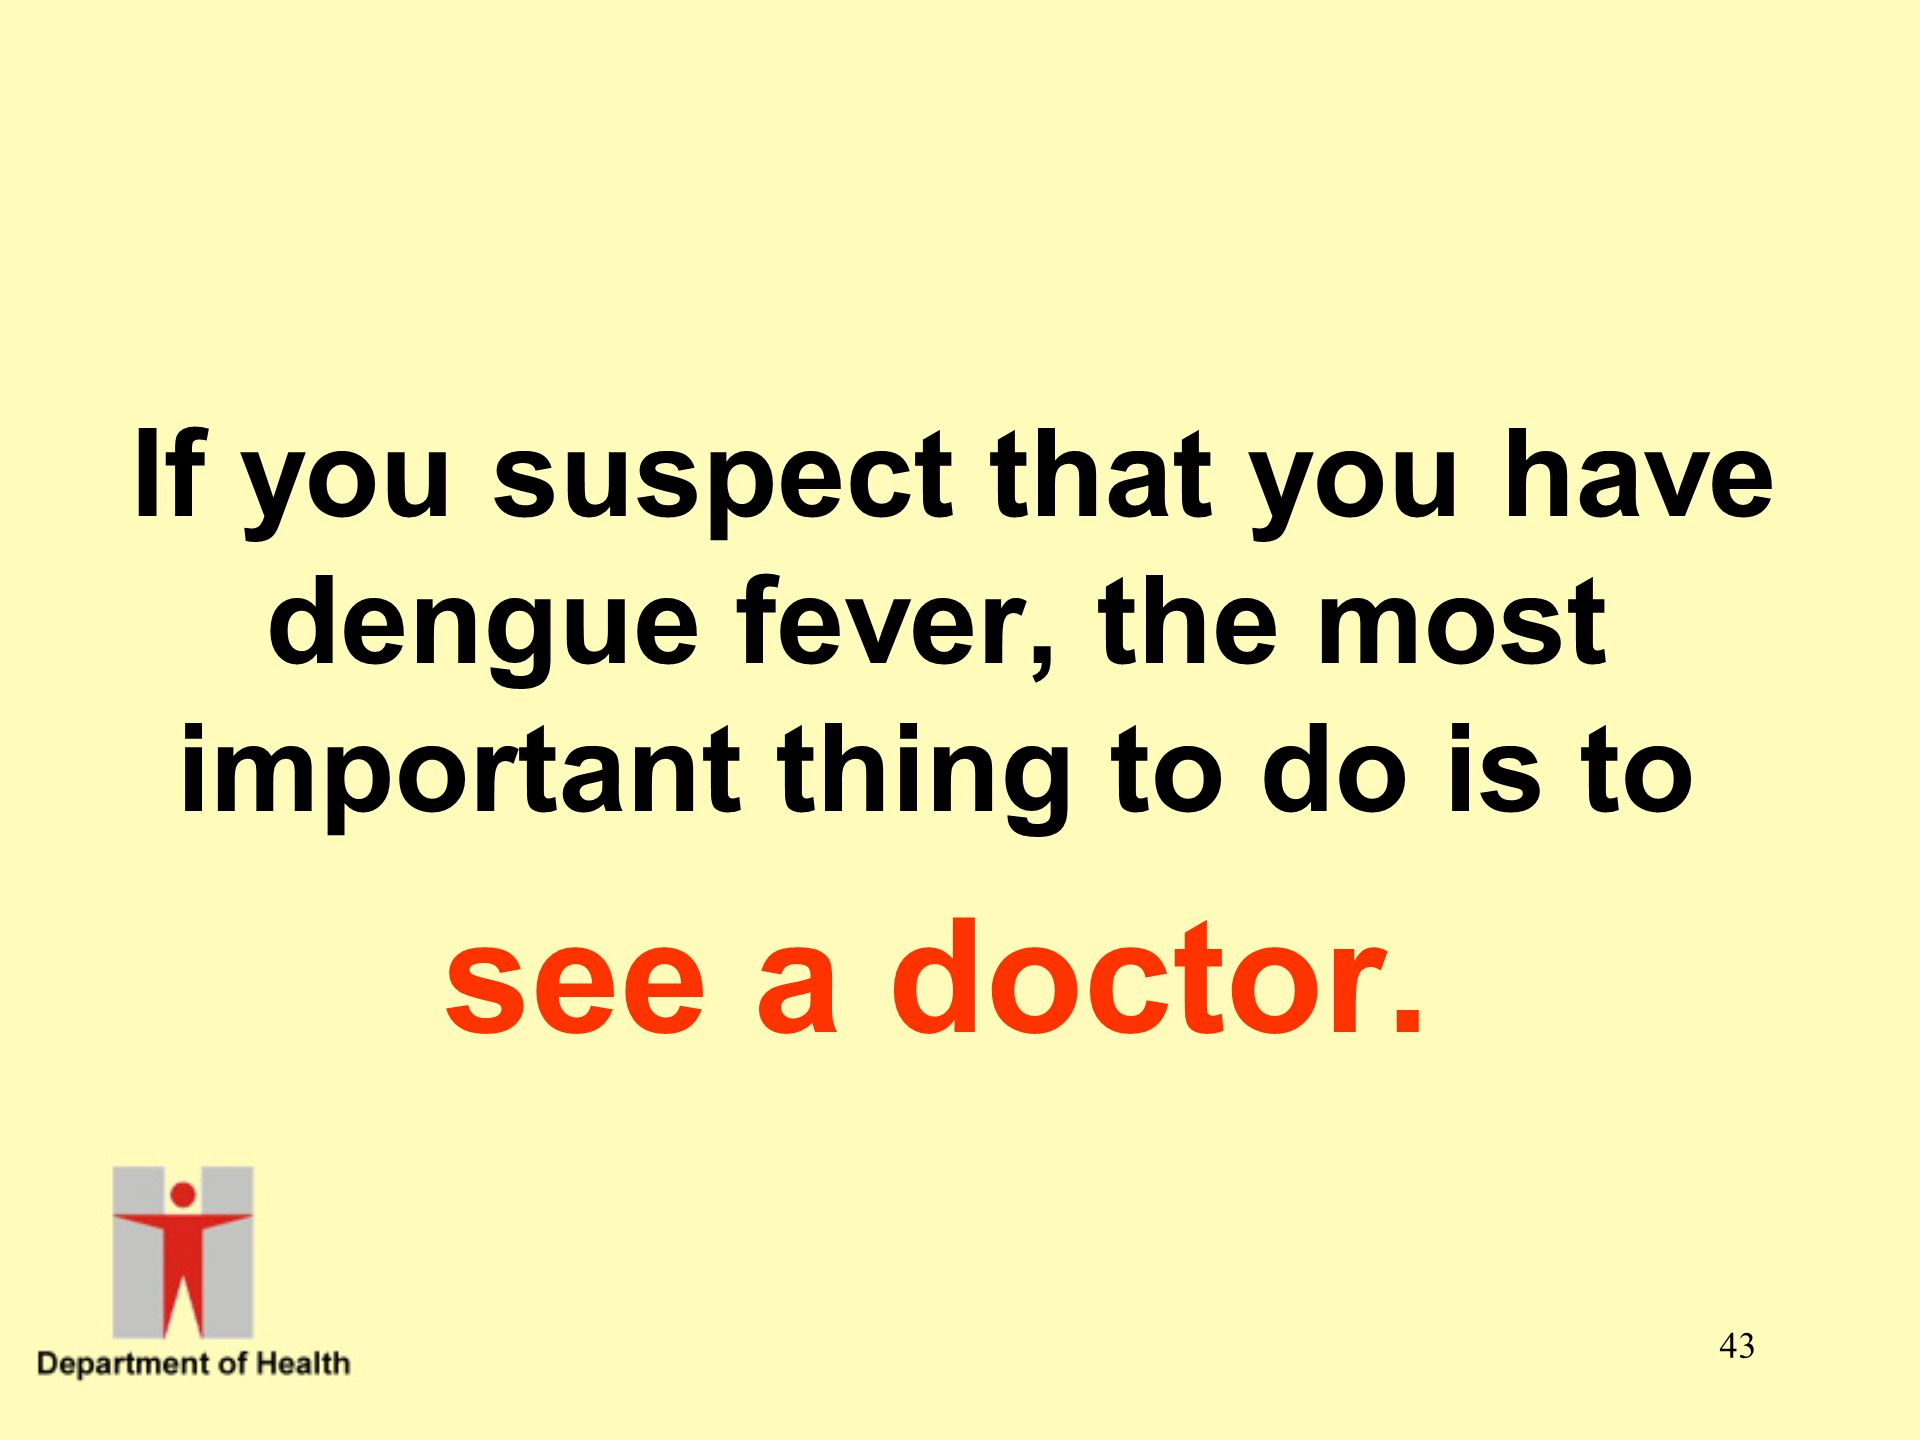 If you suspect that you have dengue fever, the most important thing to do is to